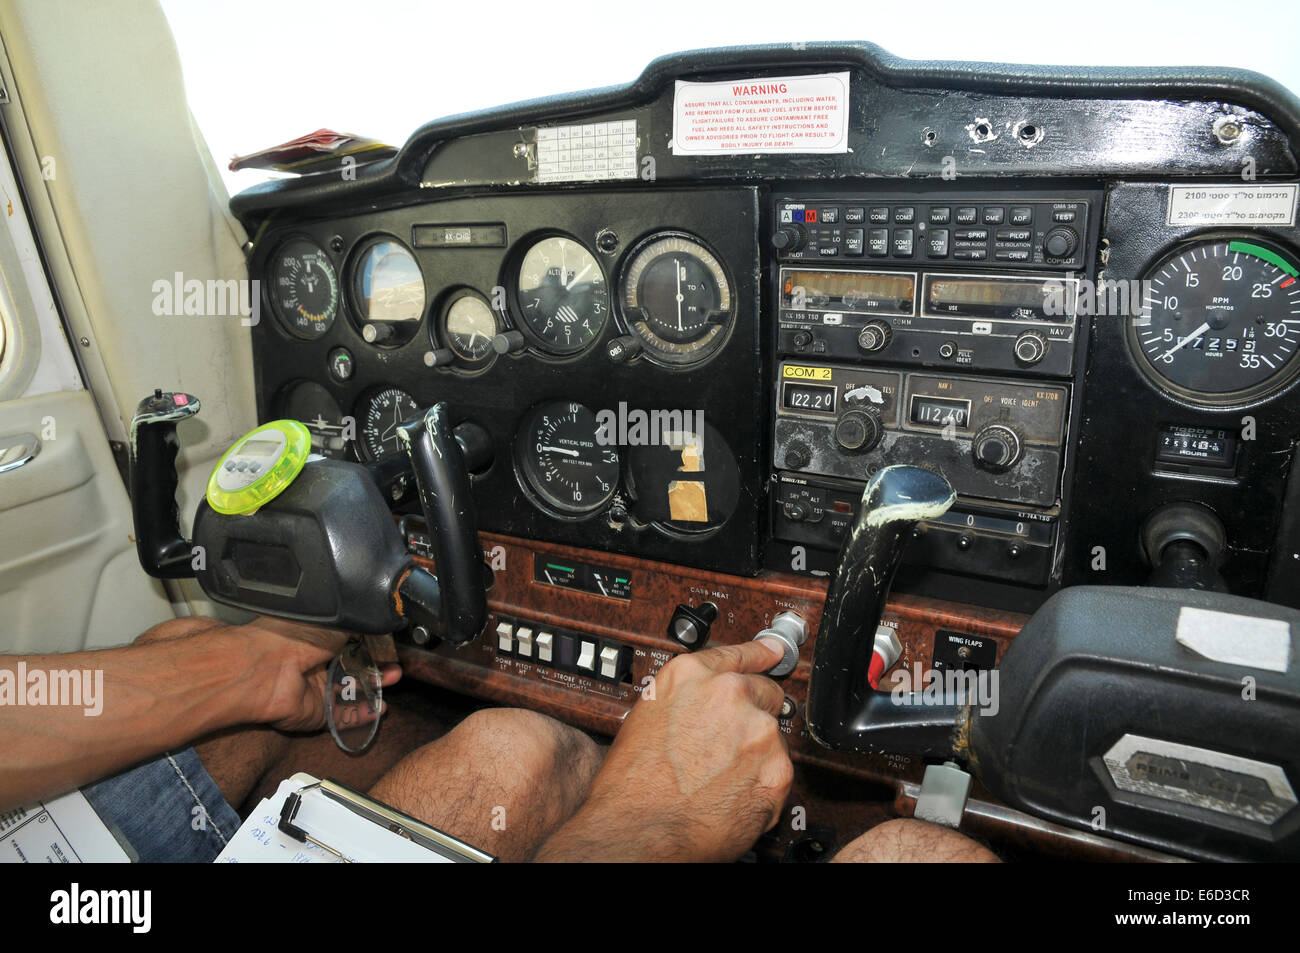 Pilot performs preflight checklist Stock Photo: 72817495 - Alamy